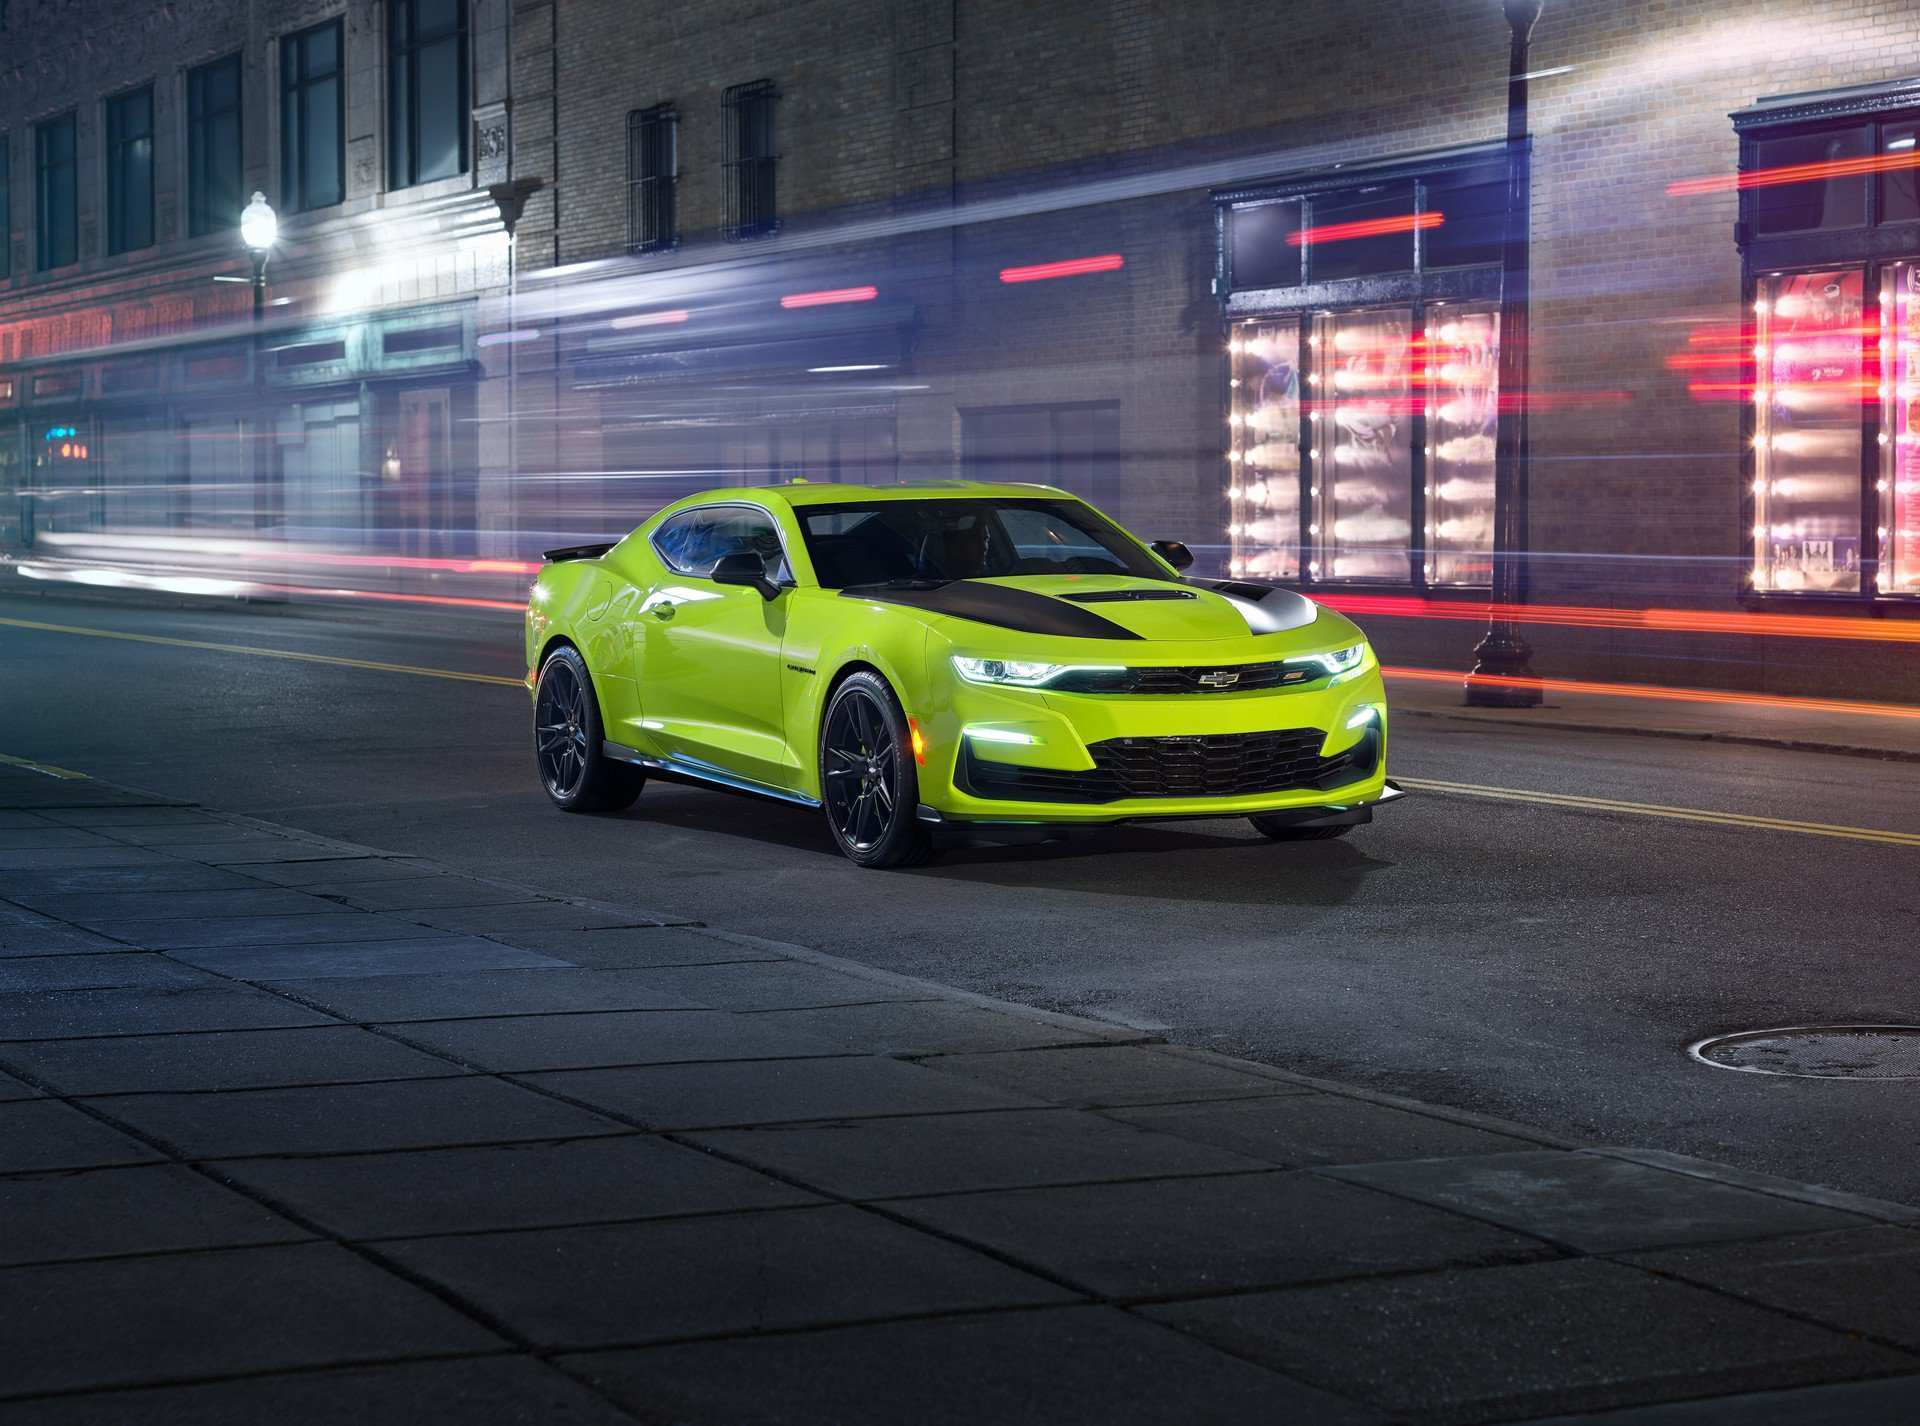 96 The Best 2020 Chevrolet Camaro Release Date And Concept